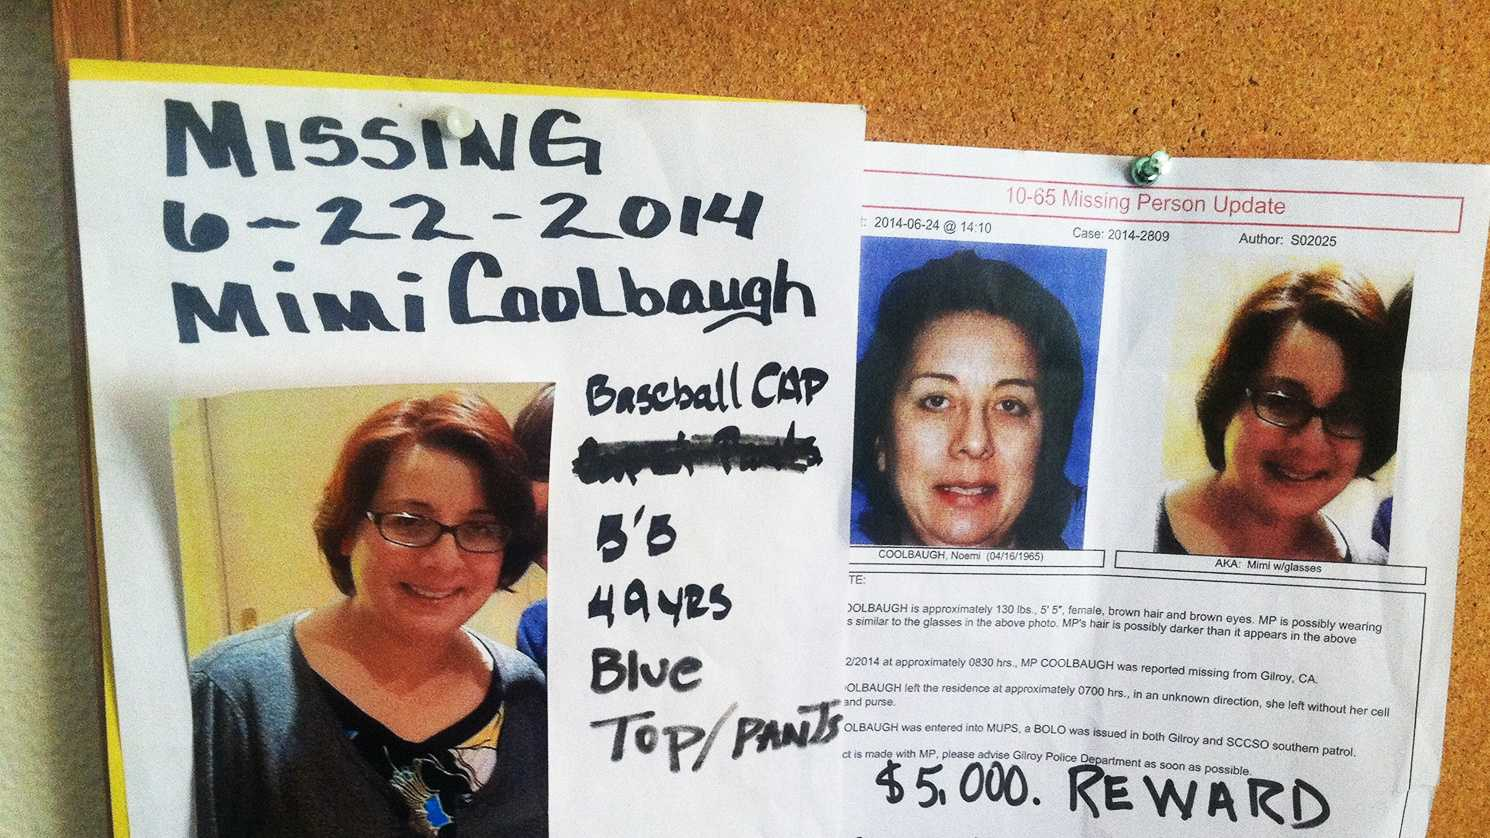 Missing posters for Noemi Coolbaugh are posted in Gilroy.